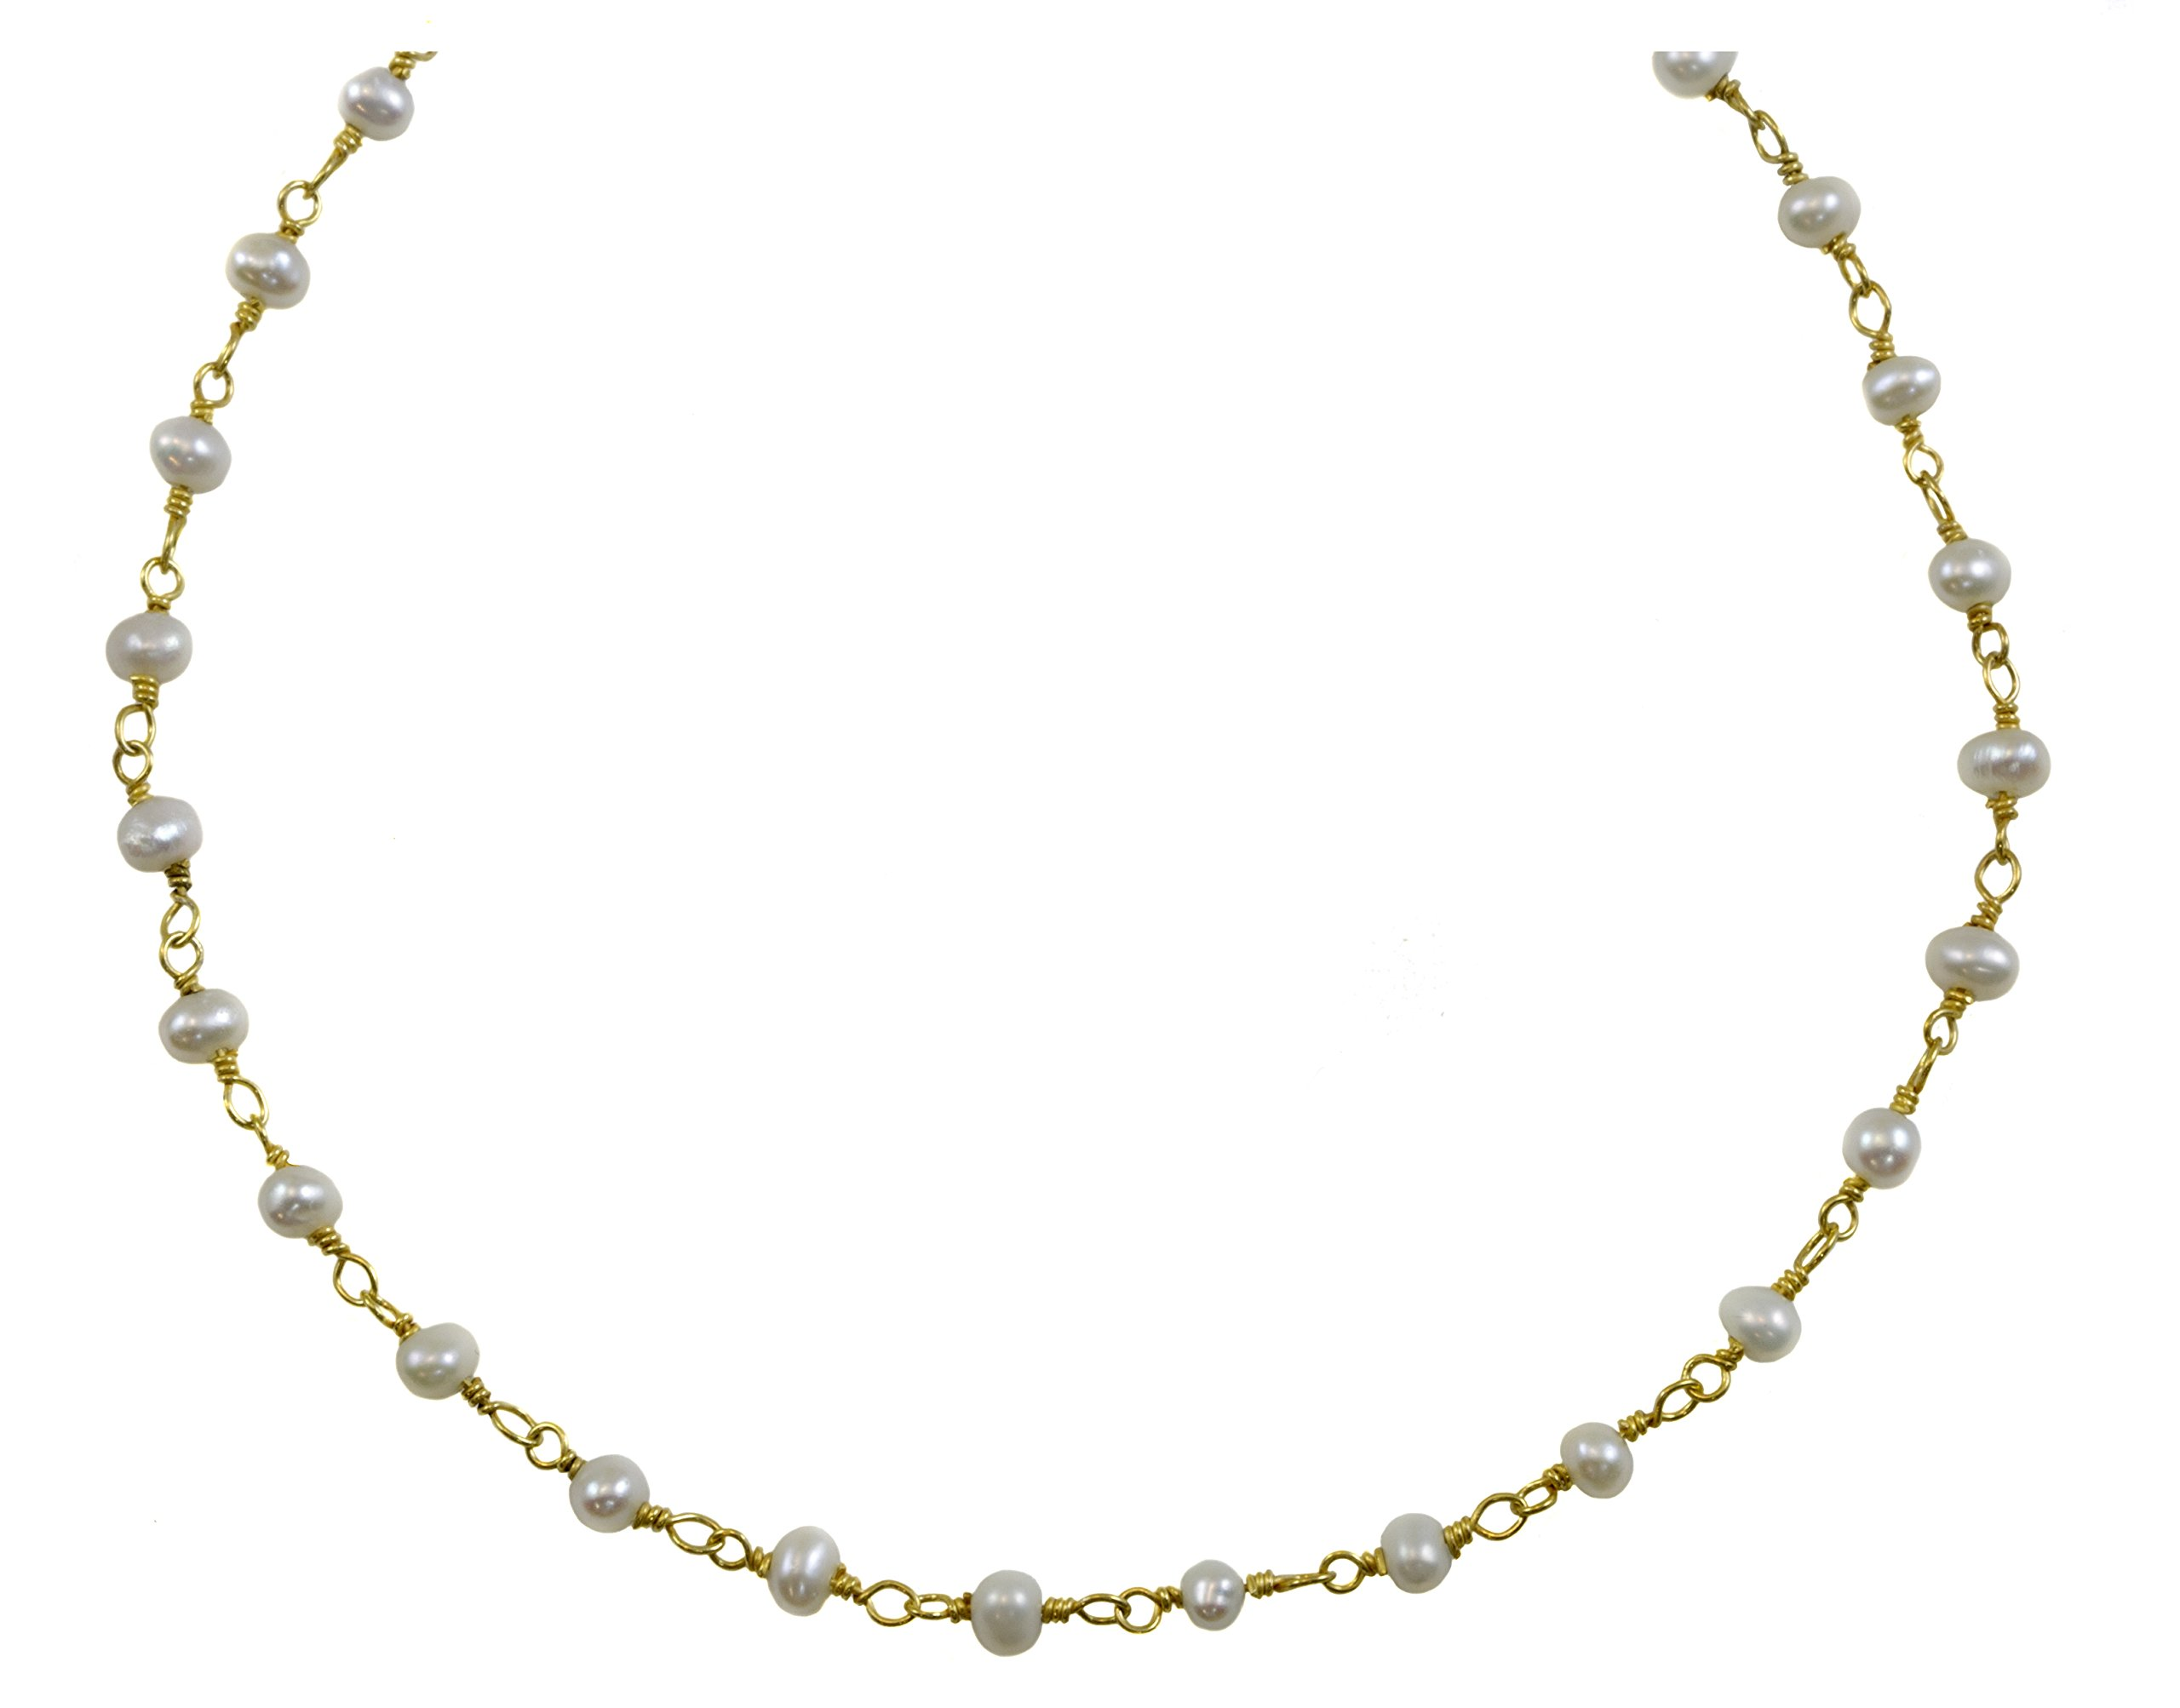 14k Gold Filled Small Freshwater Cultured Pearl Necklace White Pearls Goldtone Chain (3.0-3.5mm), 18''